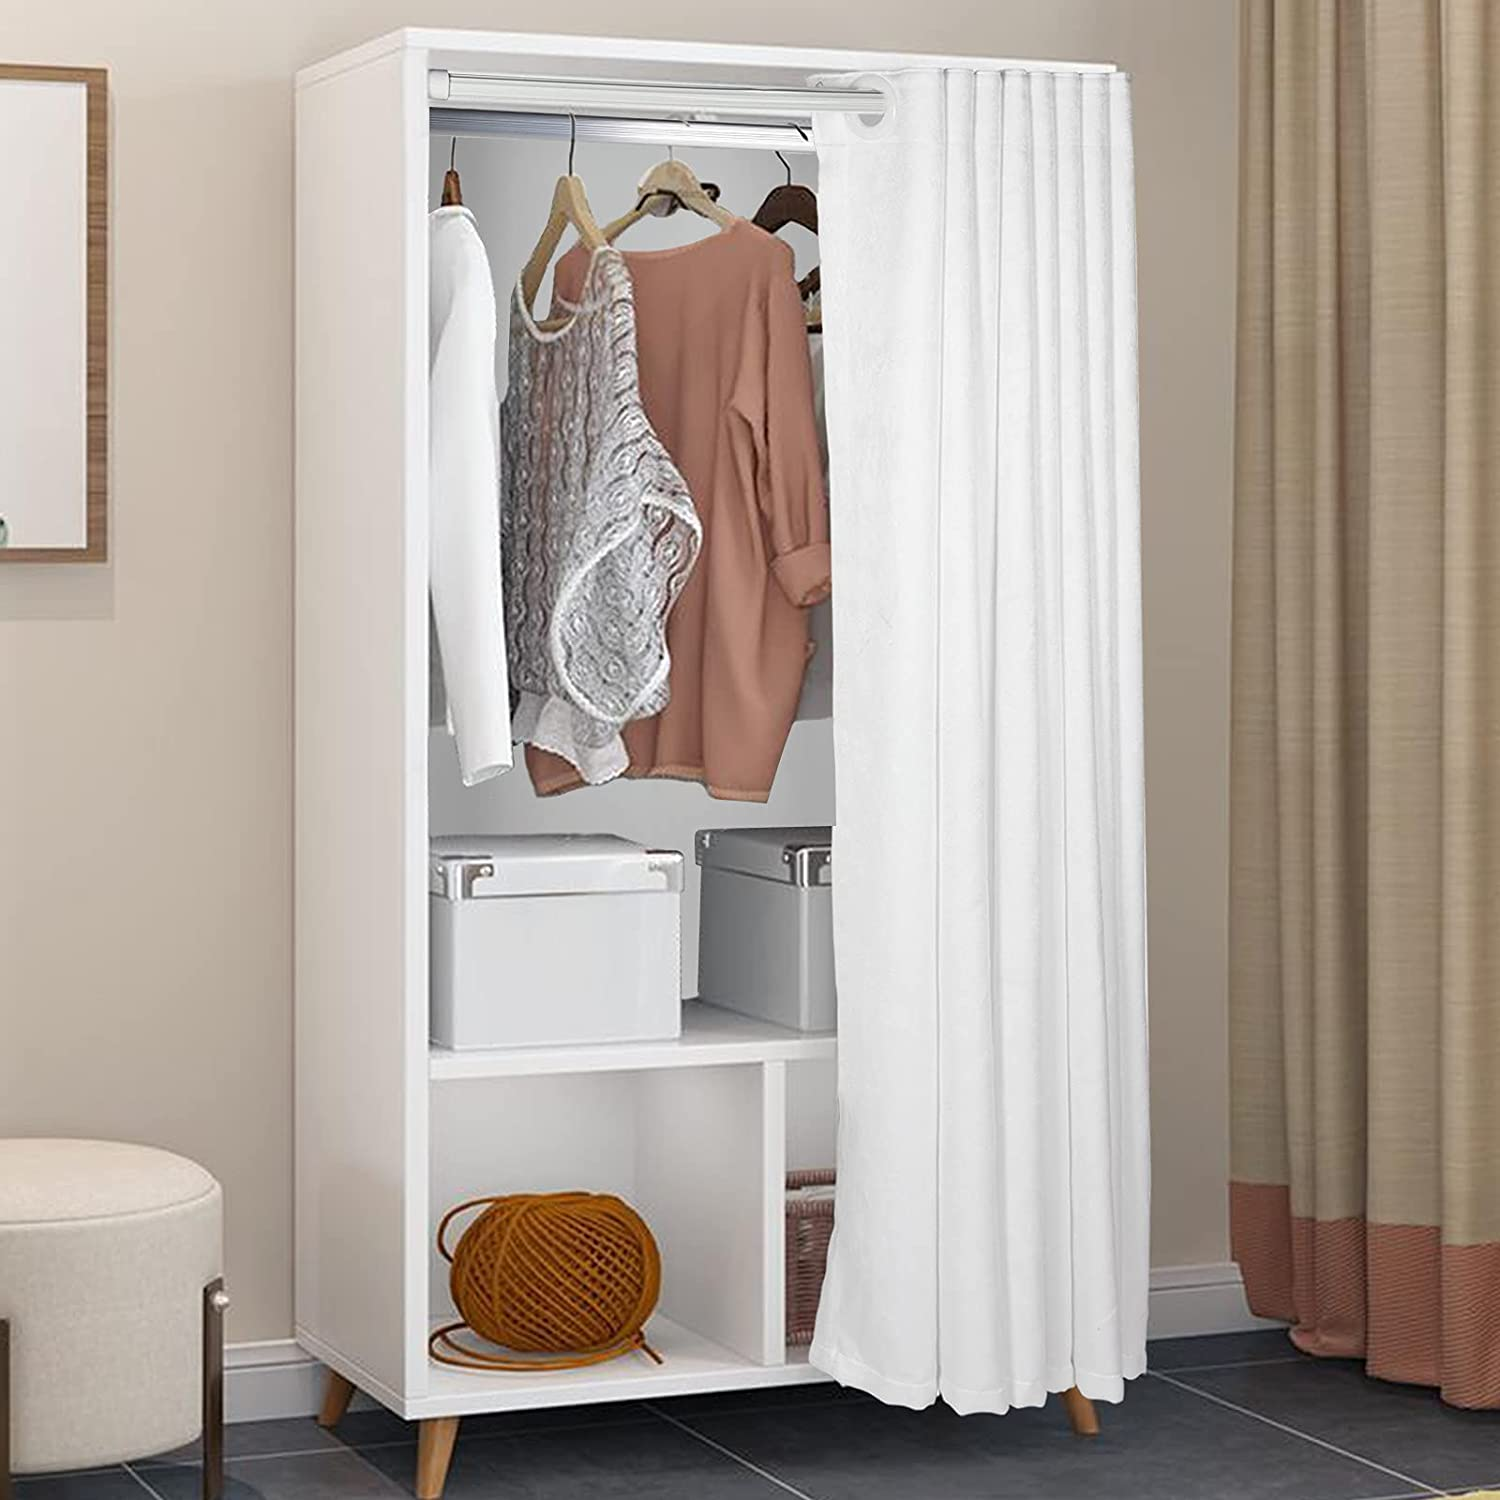 Wardrobe Closet discount with Clothes OFFicial store Rail Clot - Wooden Cabinet